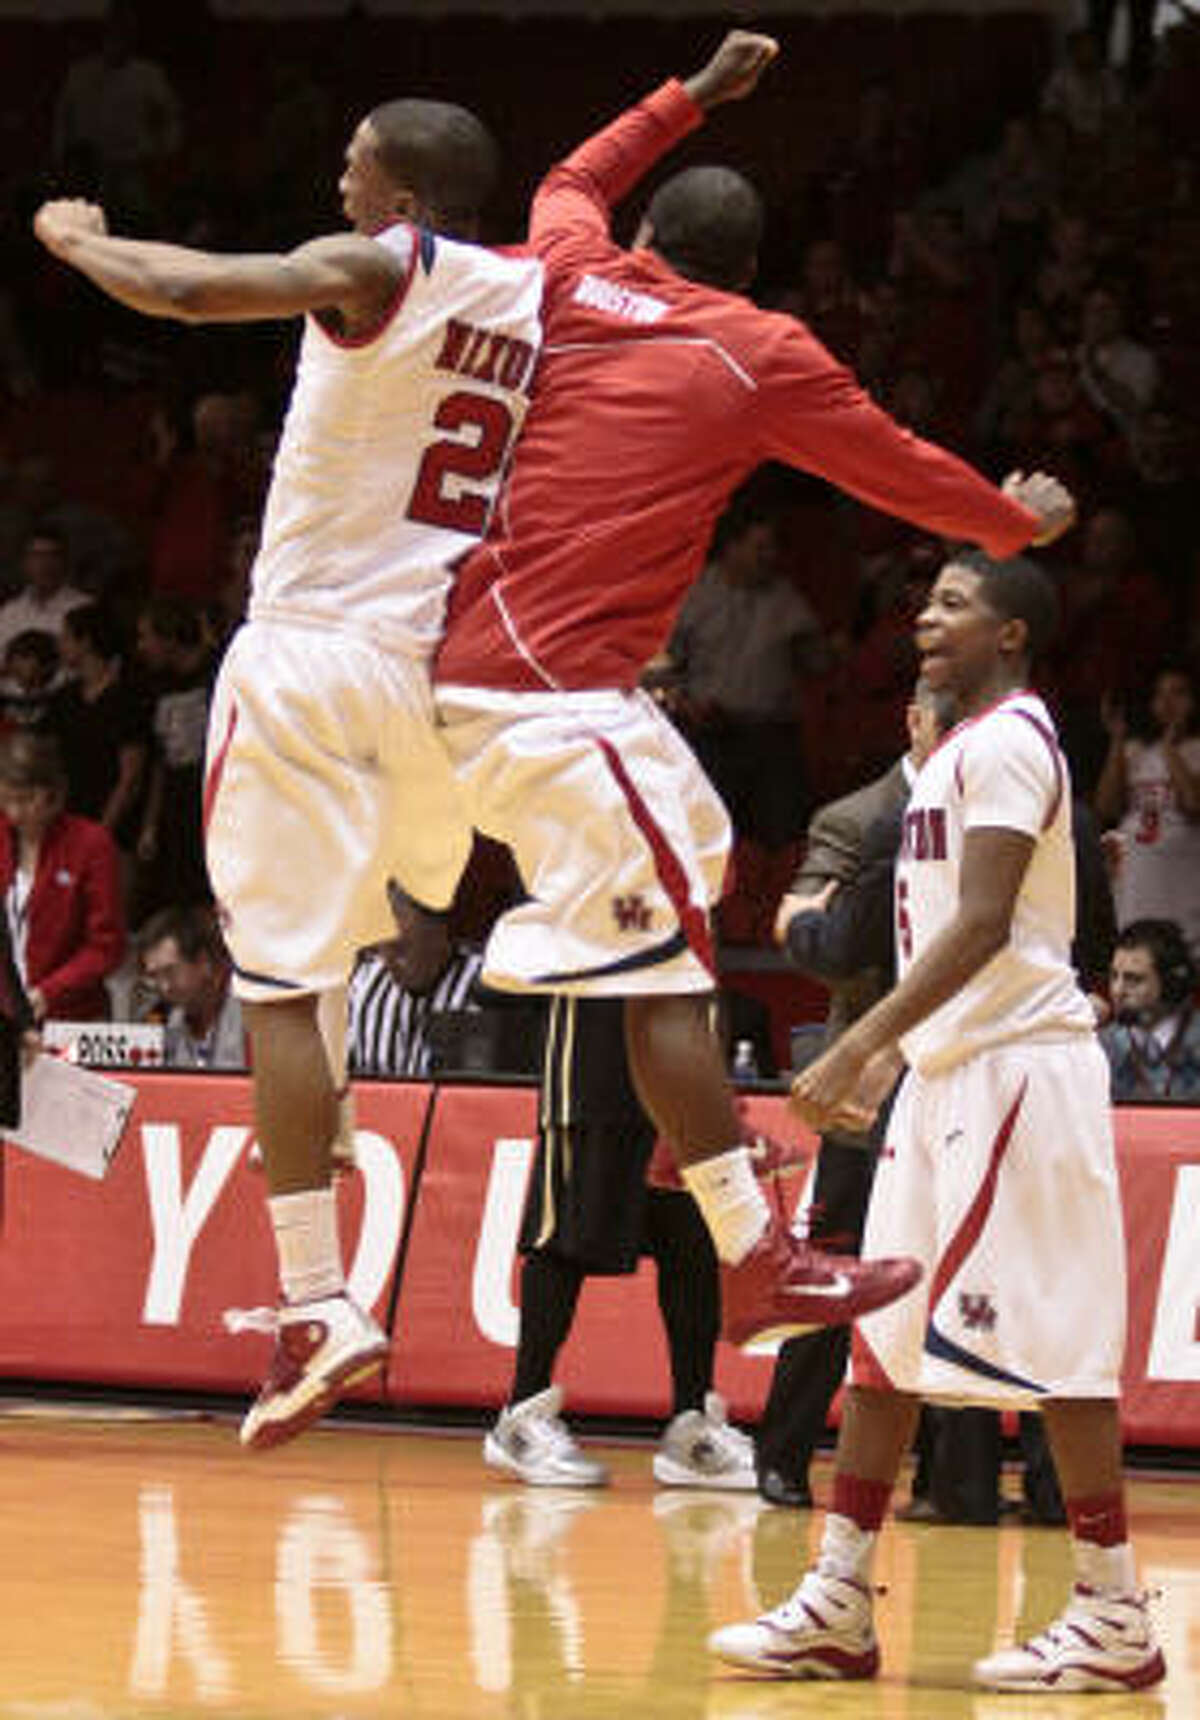 UH players celebrate their victory against Central Florida.